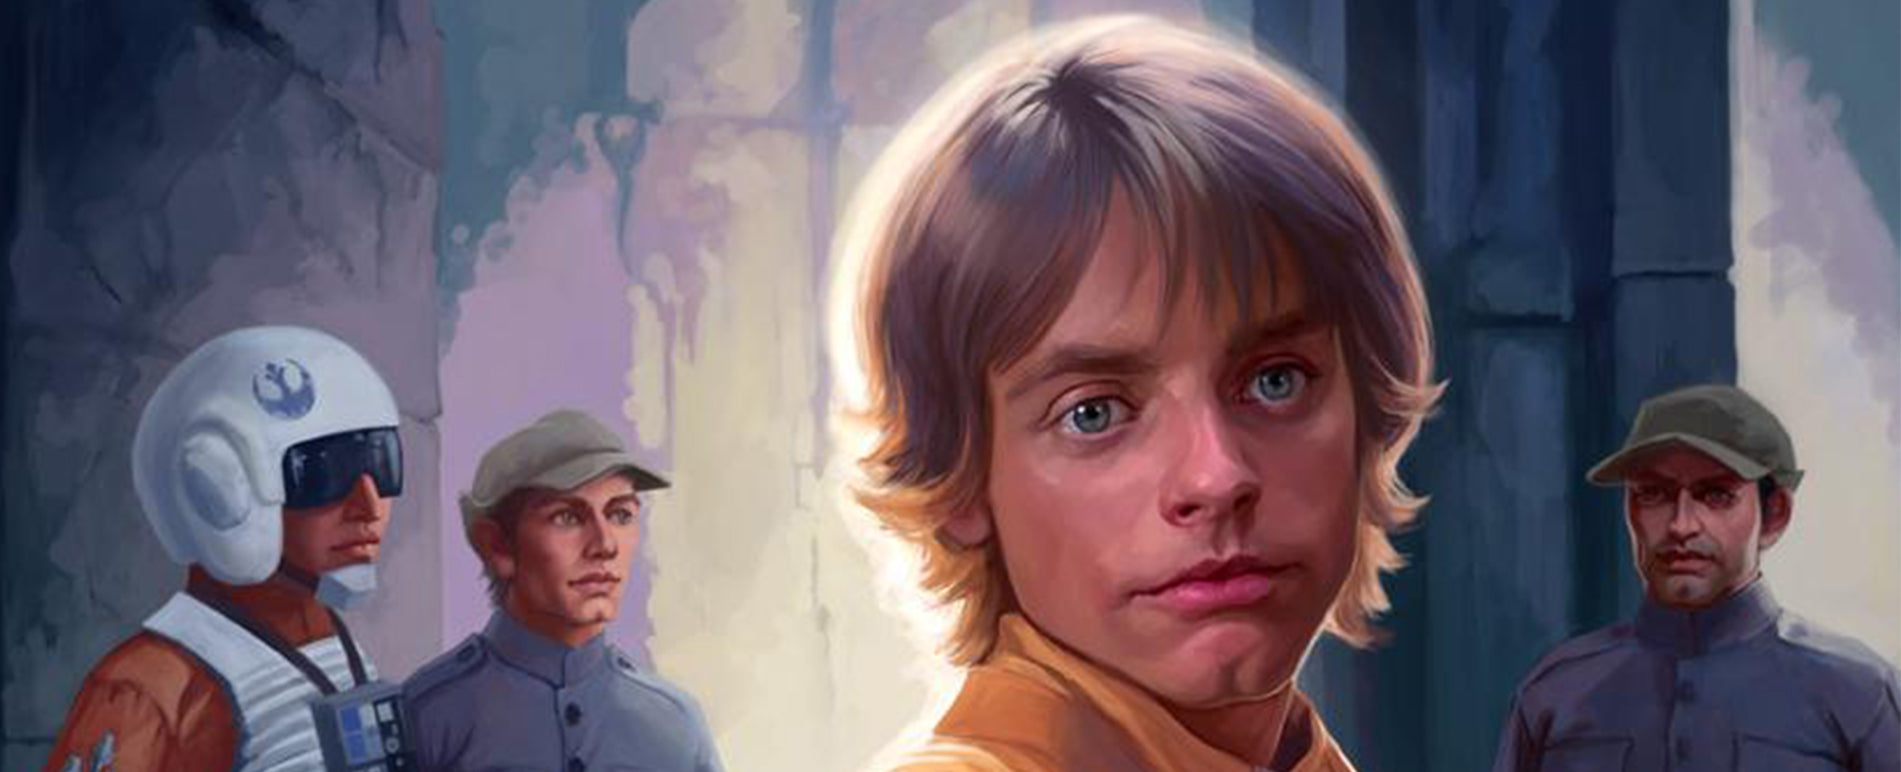 Luke Skywalker 1